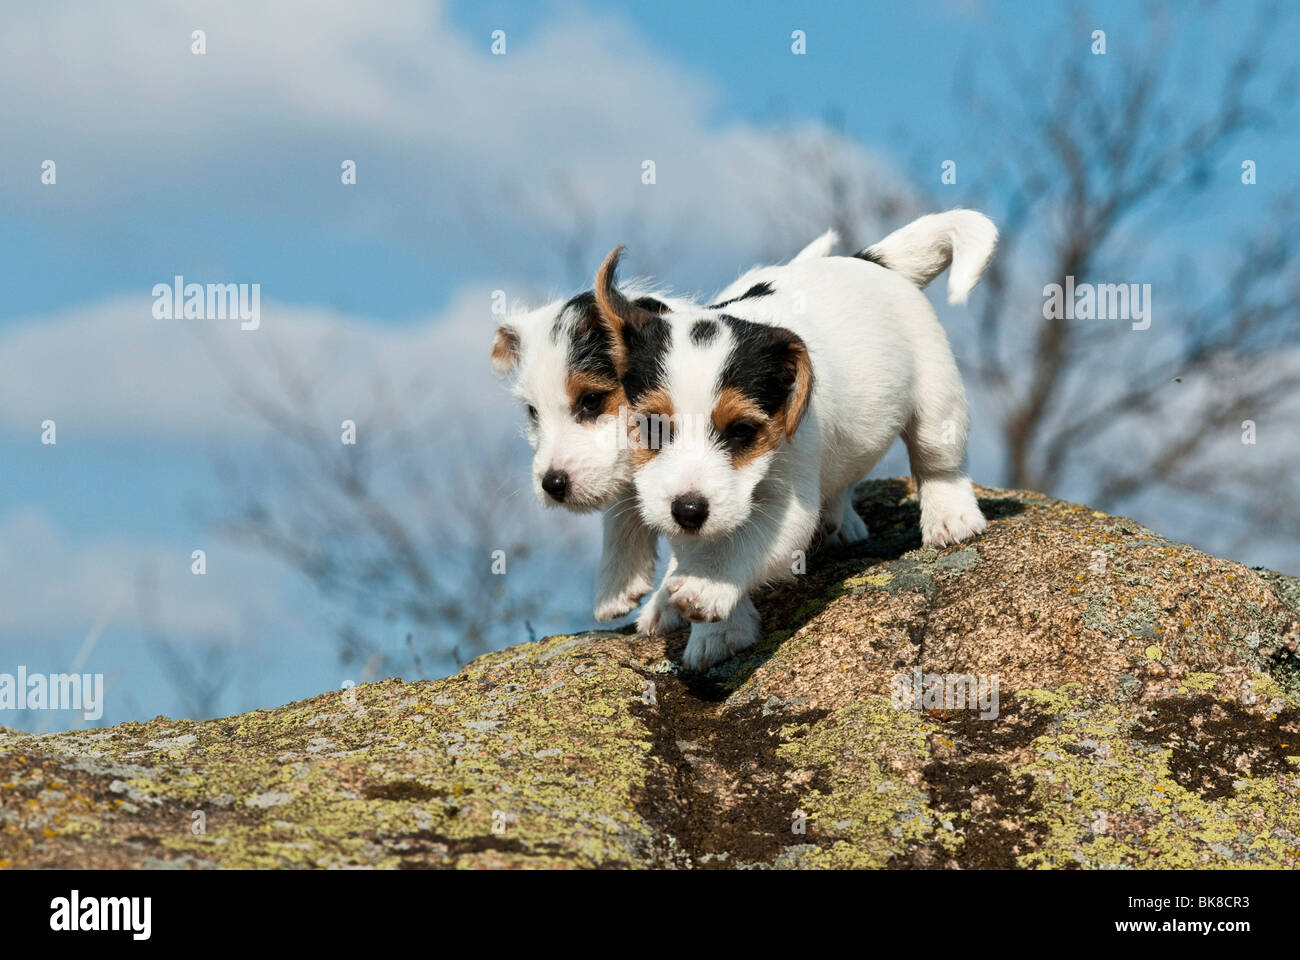 Two Jack Russell Terriers Stock Photos & Two Jack Russell Terriers ...